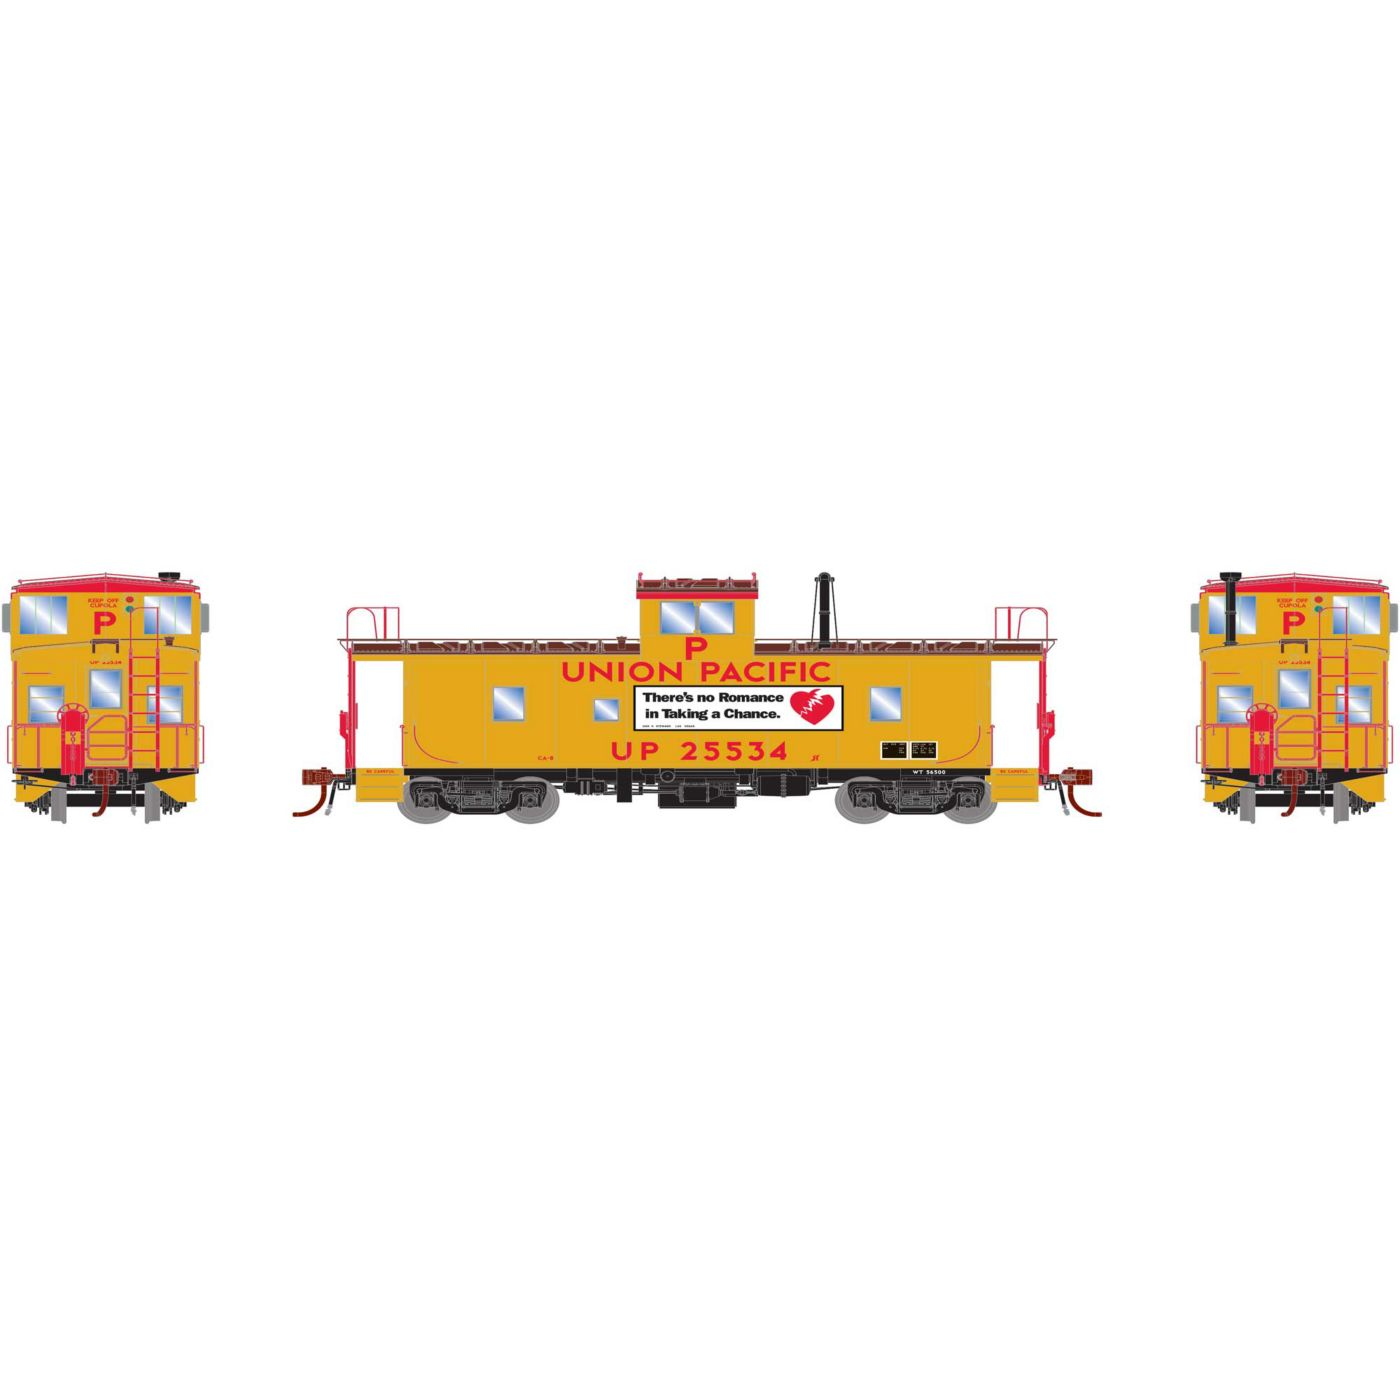 Athearn Genesis HO ICC Union Pacific Caboose with DCC-Lights & Sound #25534